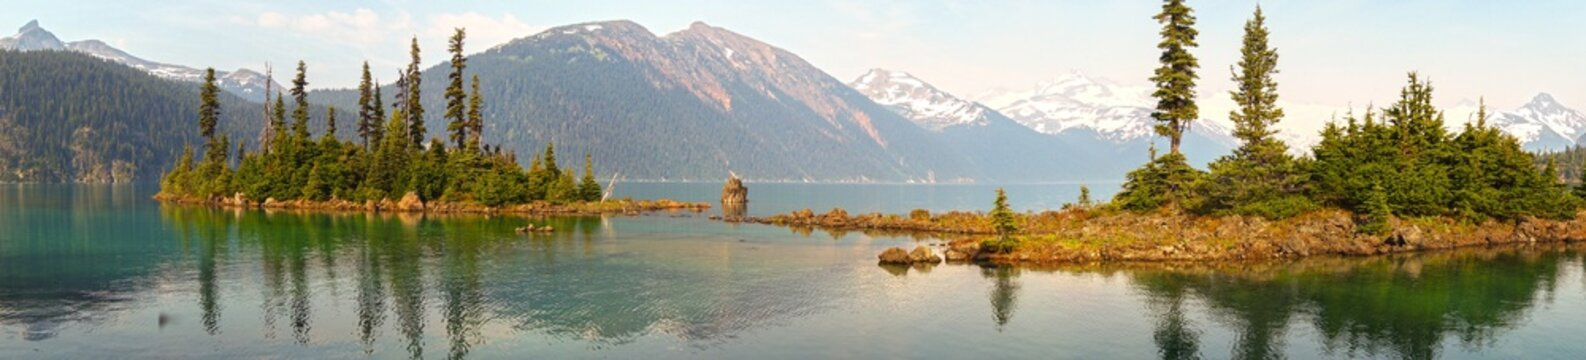 Garibaldi Lake Wide Panoramic Landscapewith distant snowy mountain peaks obscured by smoke from summer wildfires